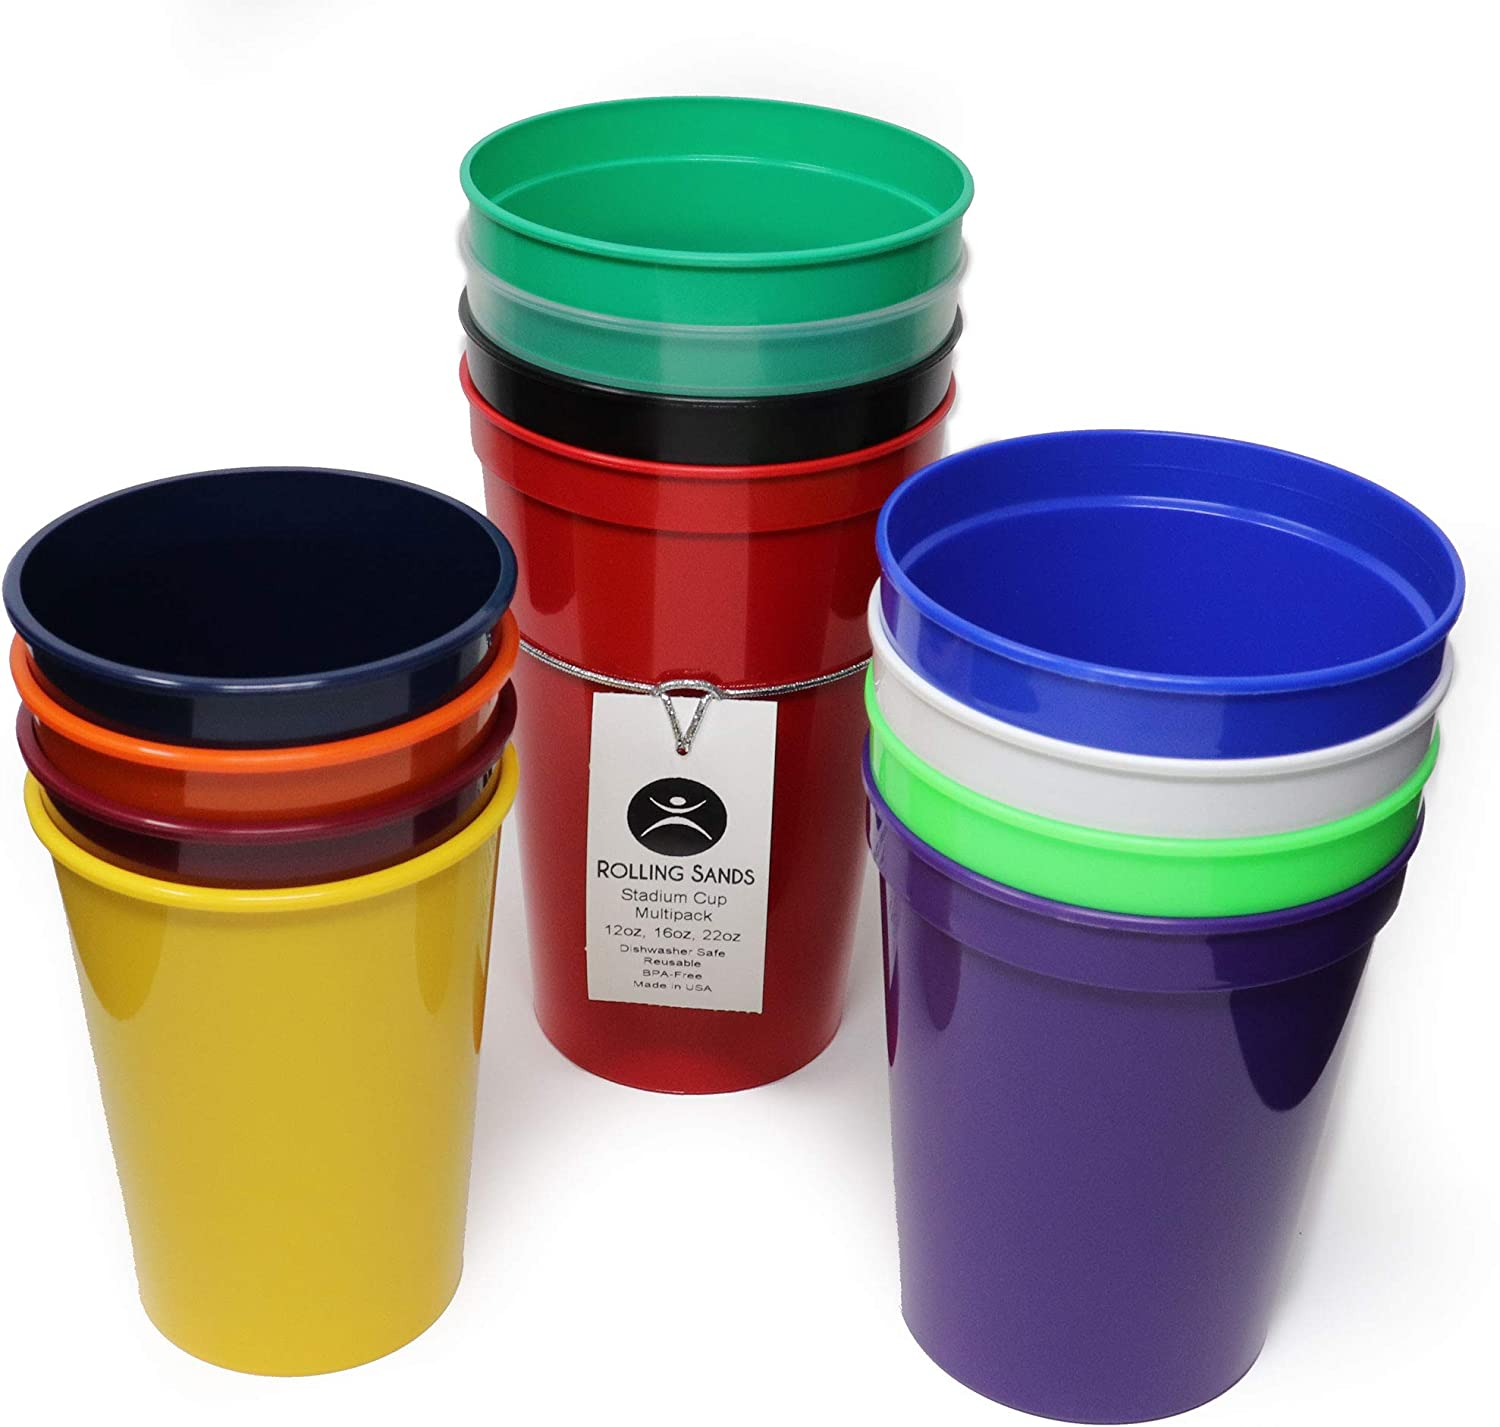 Rolling Sands 12 Pack Reusable Plastic Stadium Cups, Multipack of 3 Cup Sizes - 12oz, 16oz, 22oz – Made in USA, BPA-Free, Dishwasher Safe Plastic Tumblers - Set Includes 4 Assorted Cups of Each Size